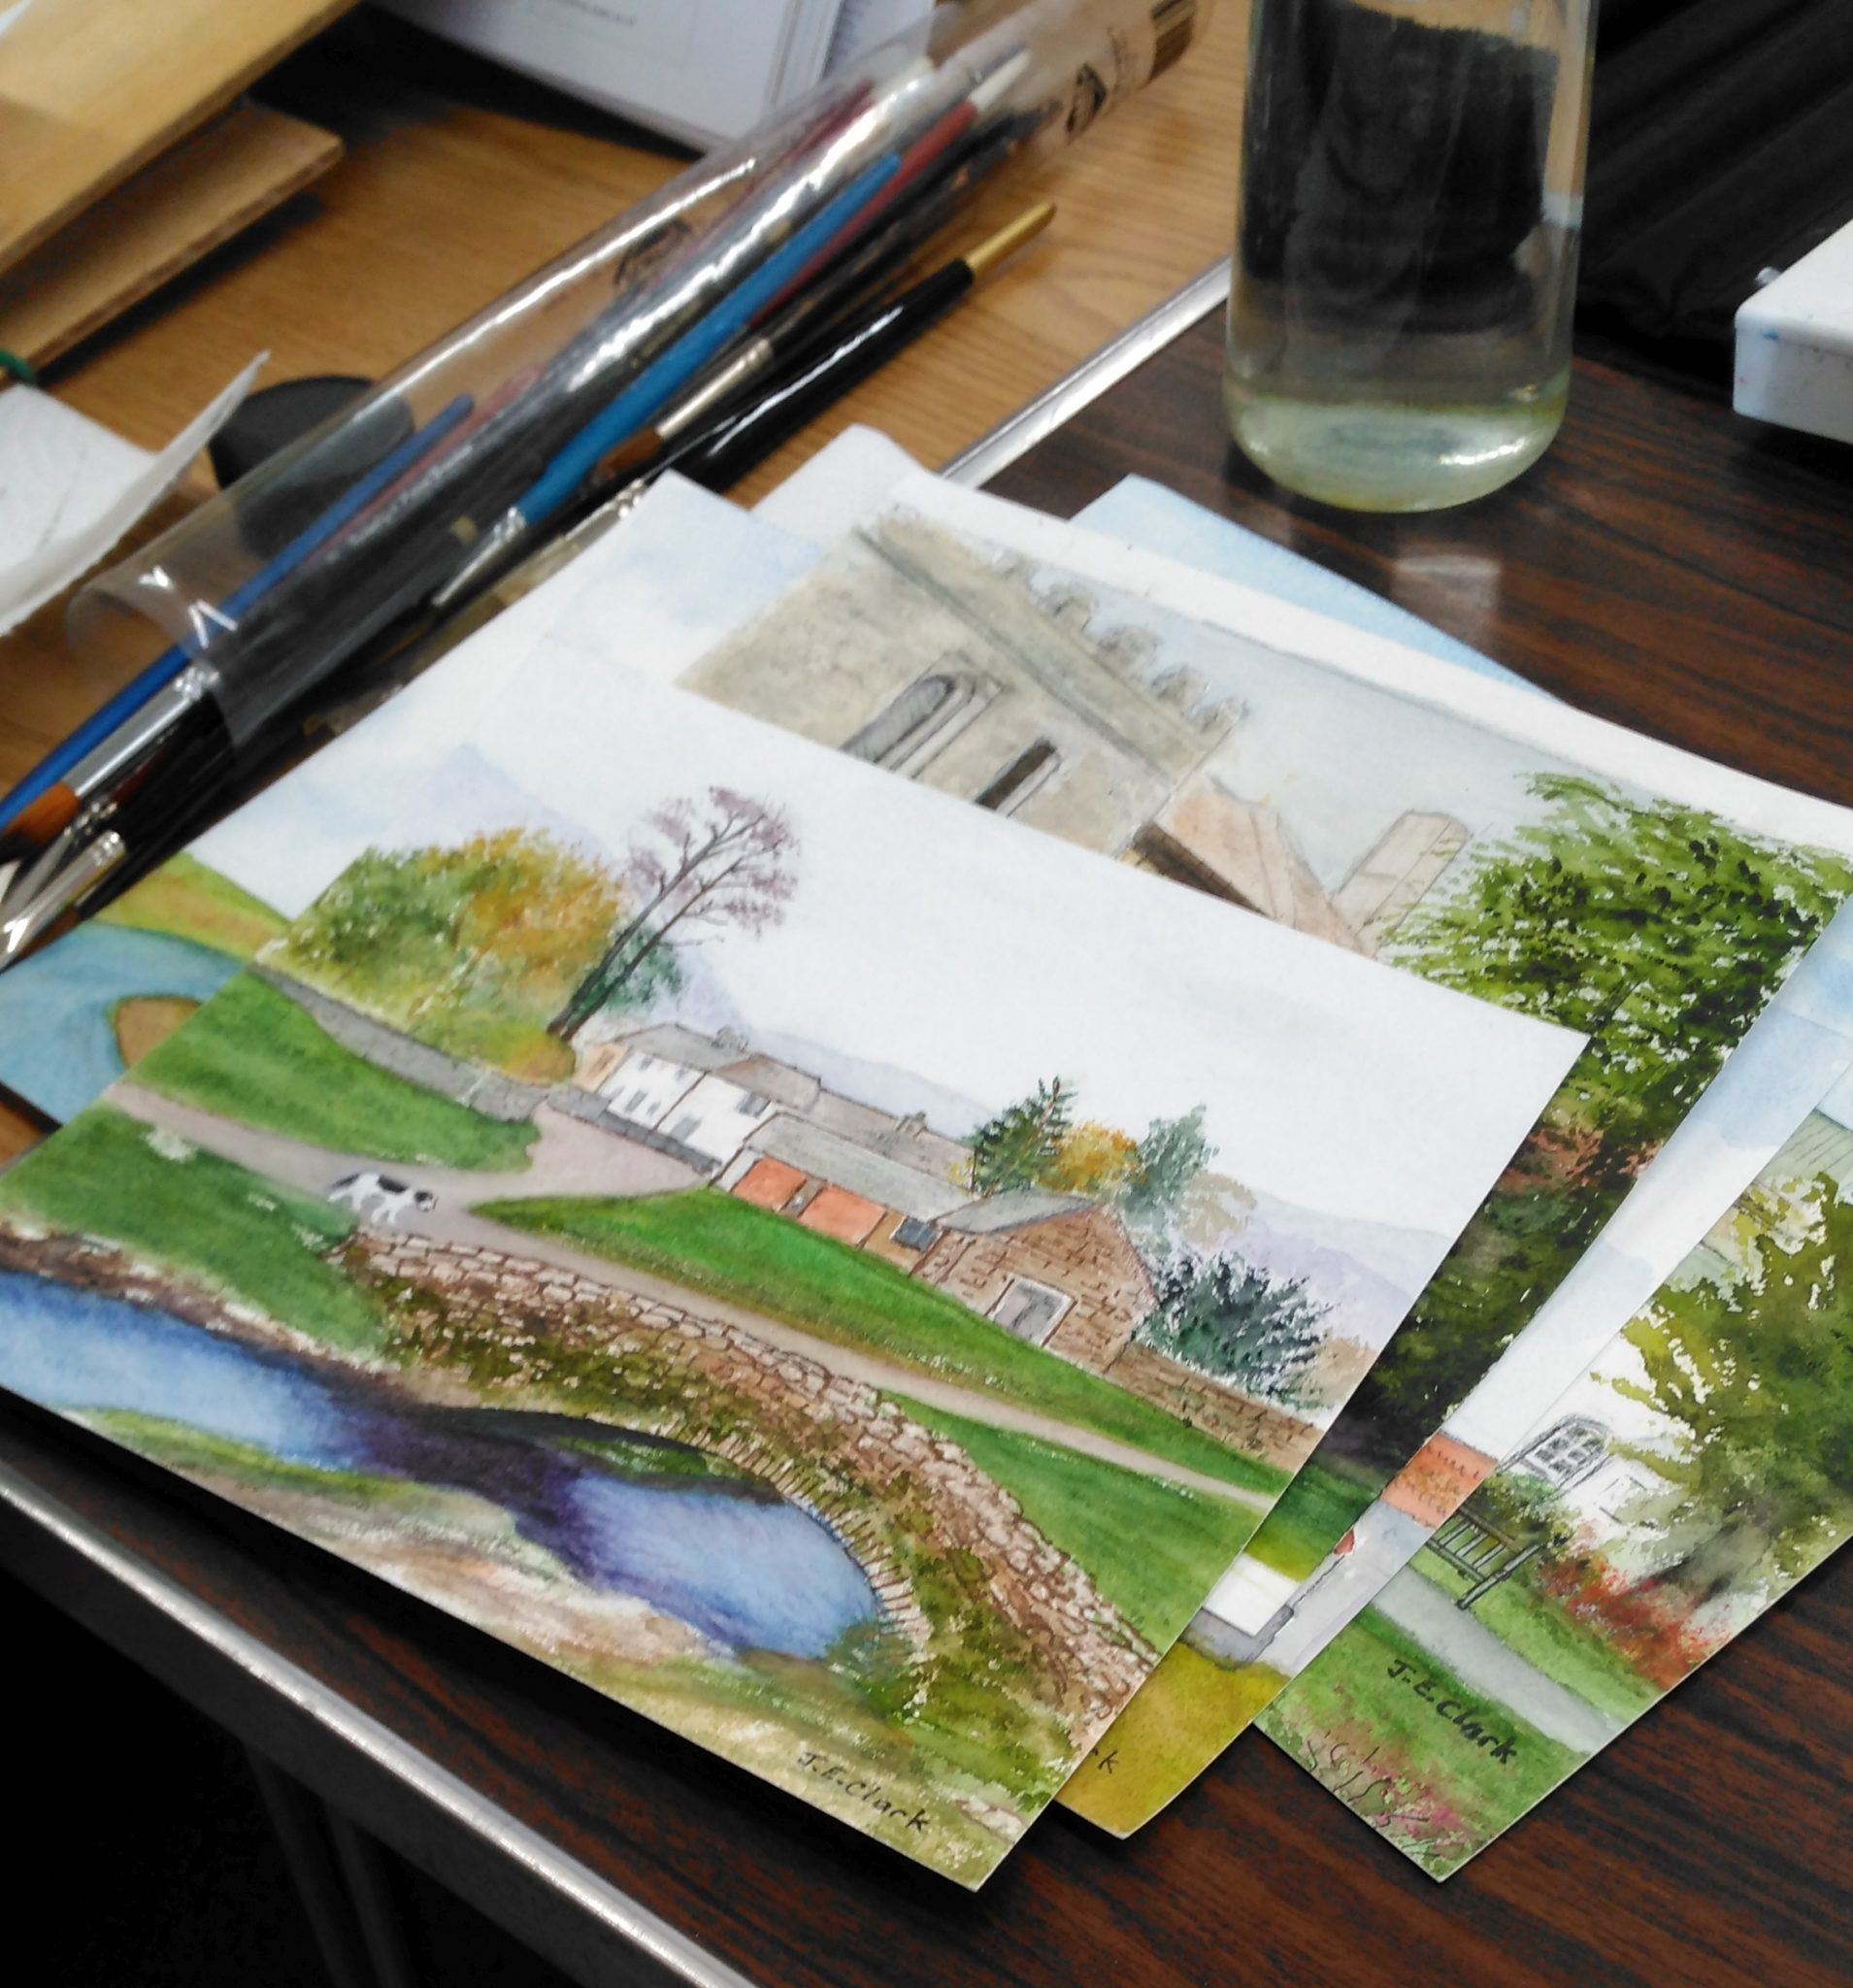 A pile of watercolours on a table with brushes and a water pot.